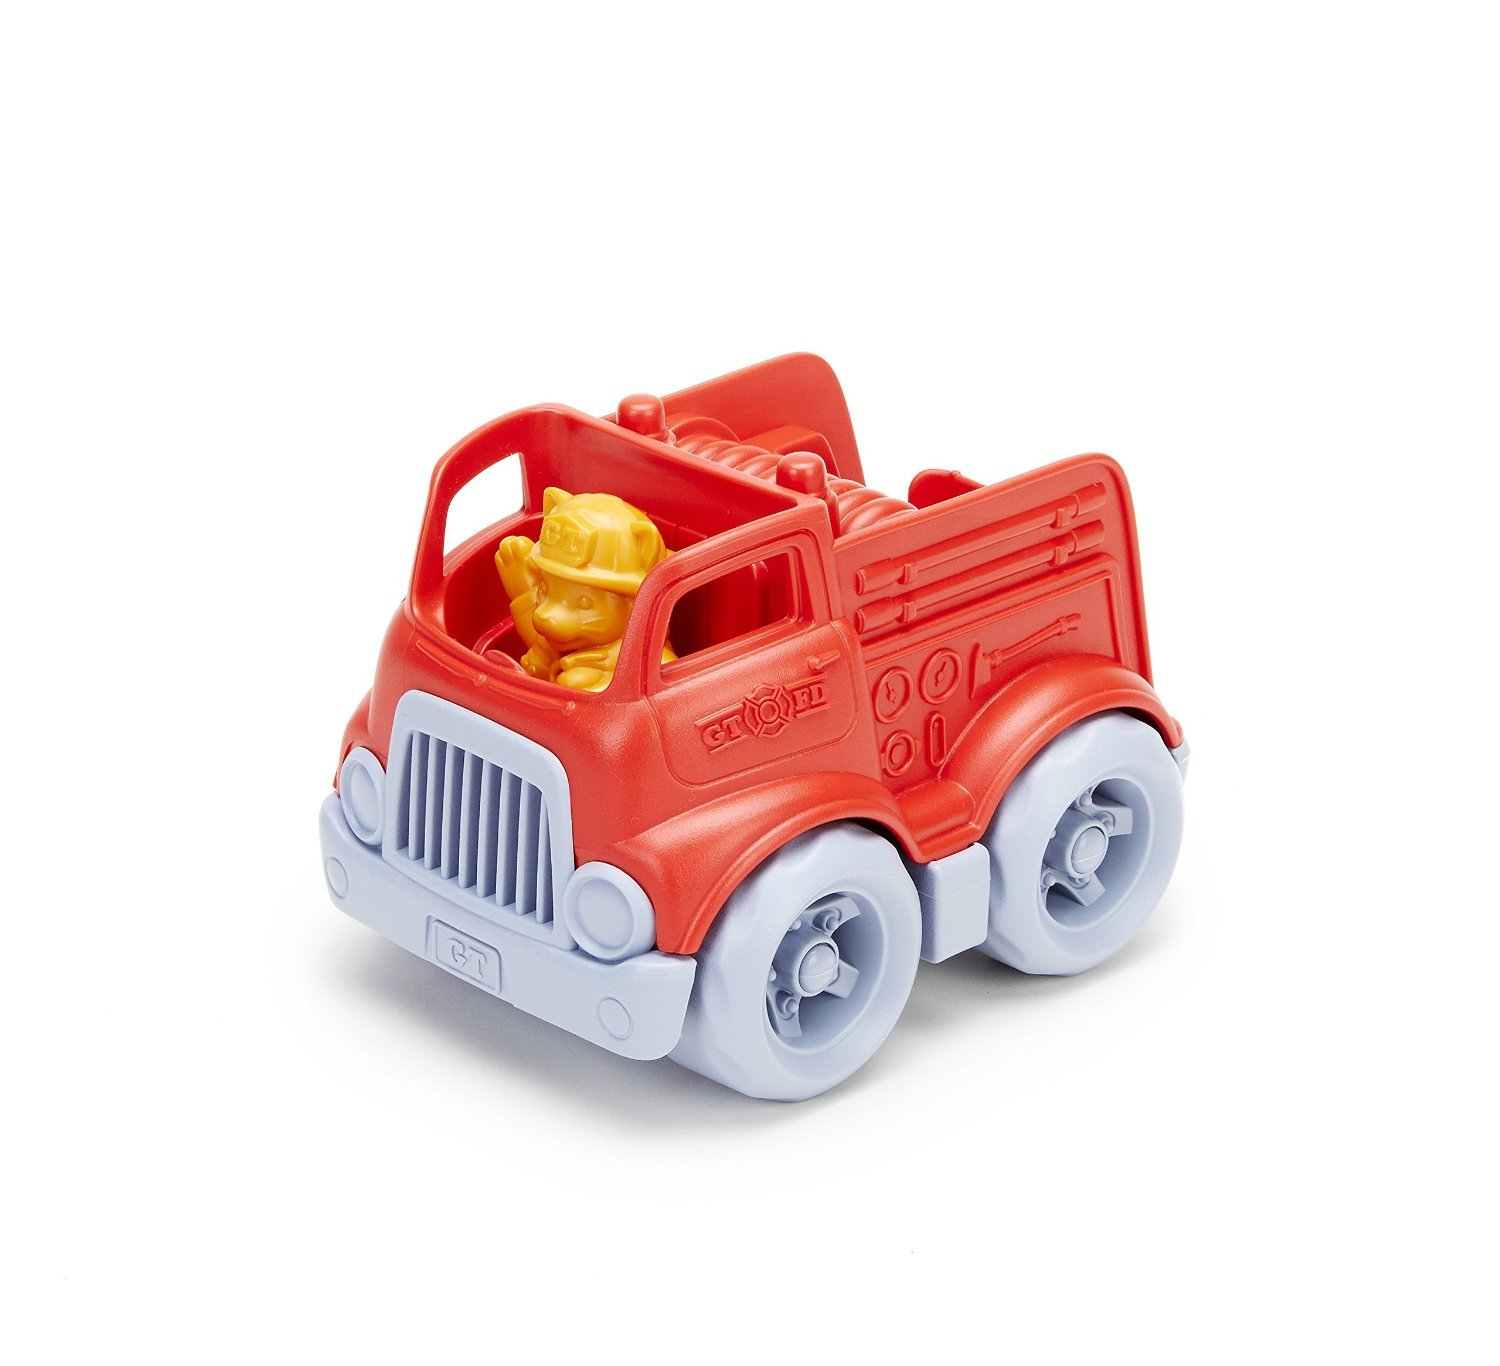 Green Toys Fire Engine Vehicle Playsets Toy fot Kids